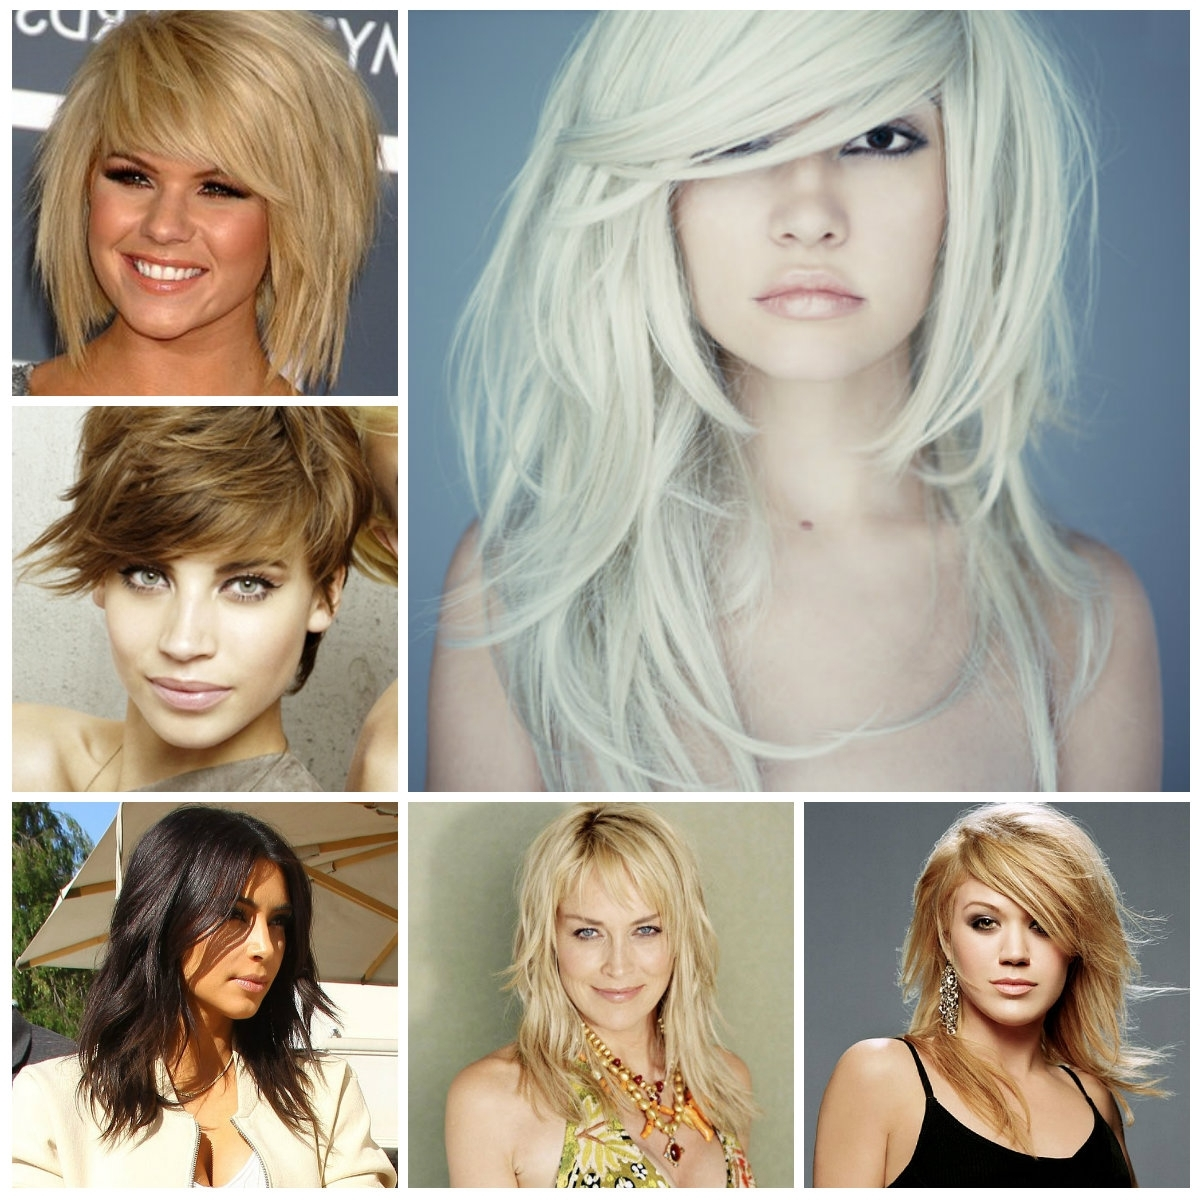 New Haircuts To Try For 2018, Hairstyles Intended For Trendy Shaggy Messy Hairstyles (View 12 of 15)